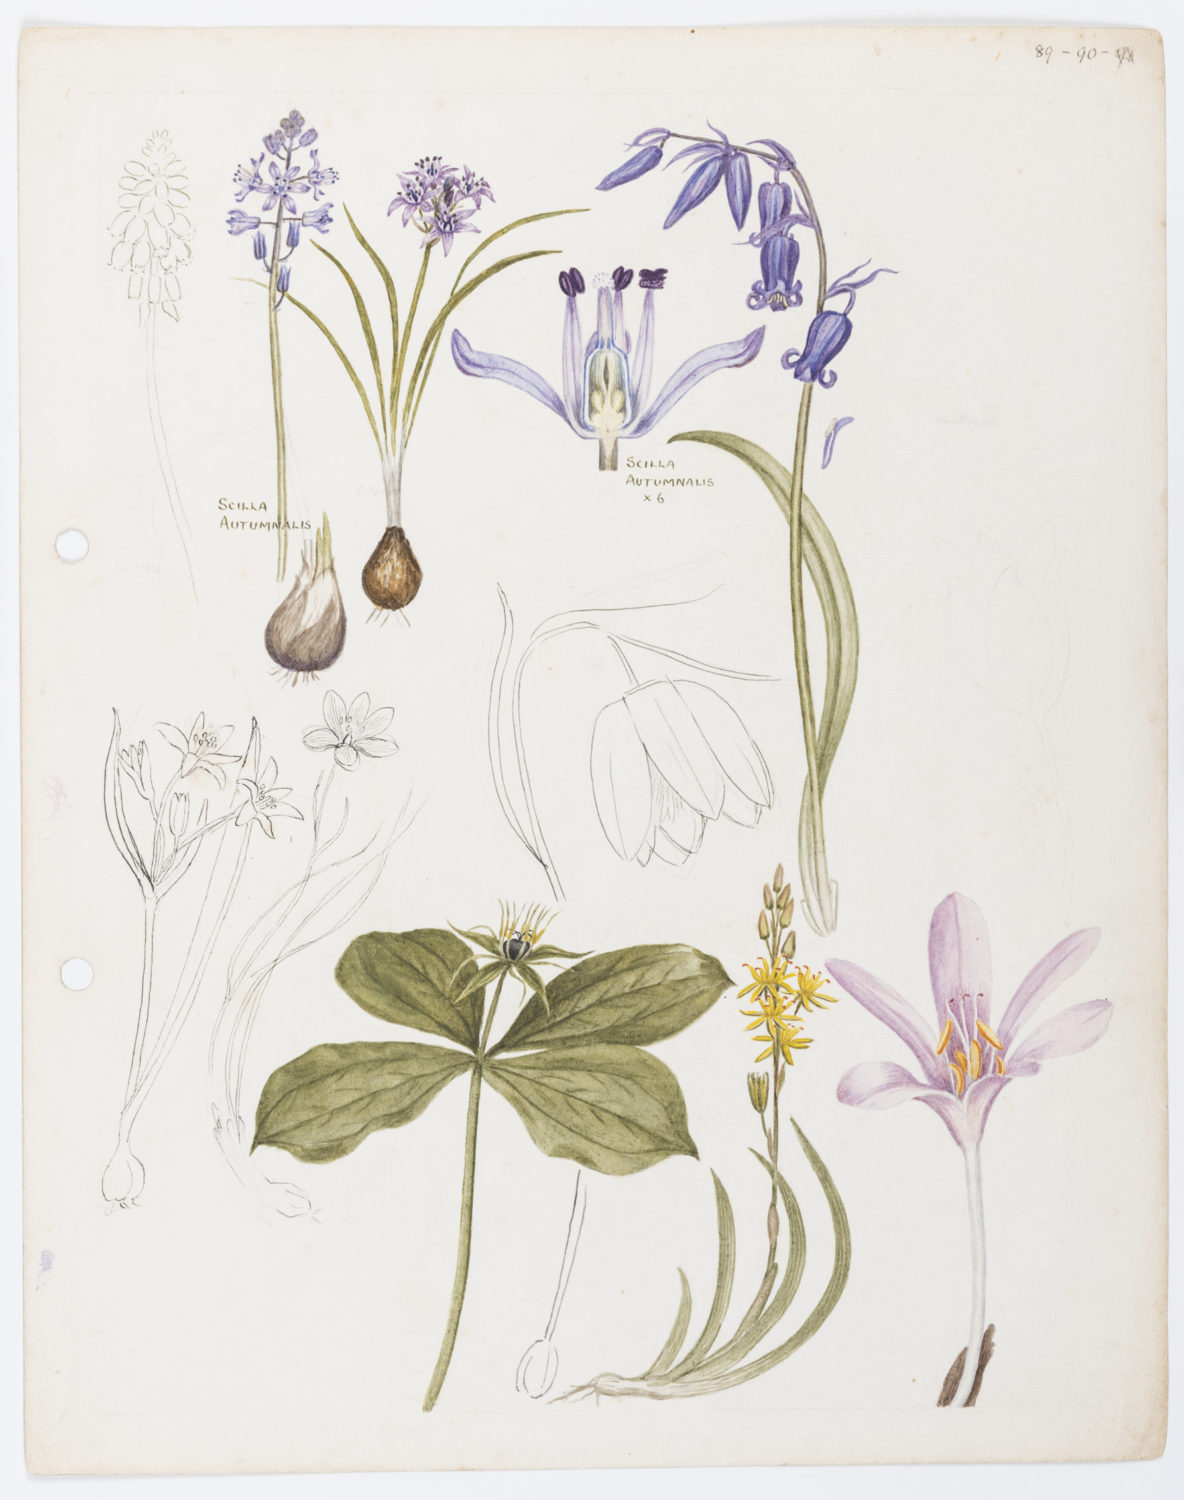 Illustration of Liliaceae: lilies by Keble Martin